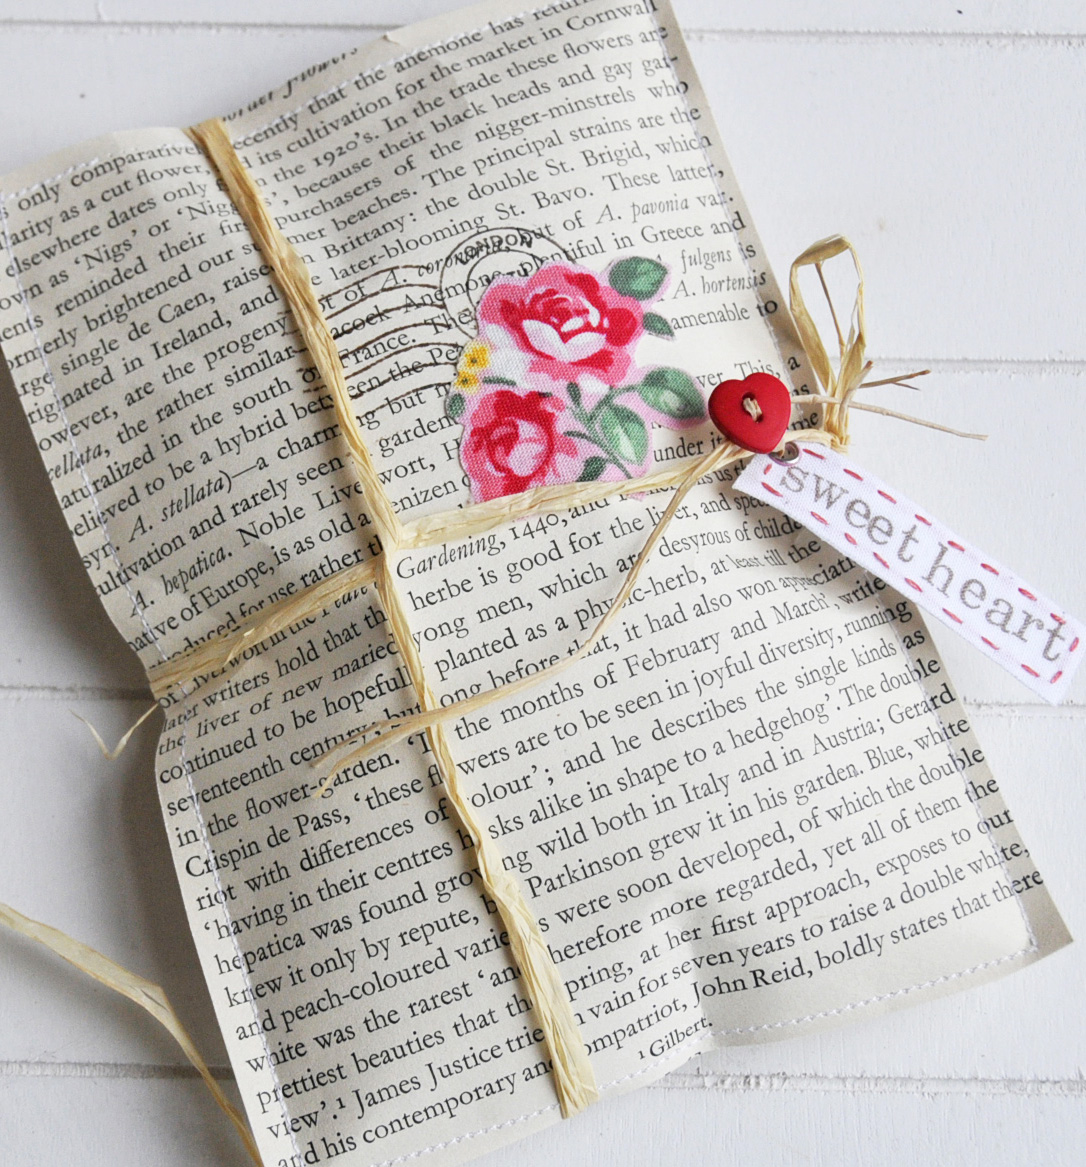 Green Gift Wrapping Paper Ideas - Book Page Gift Packet